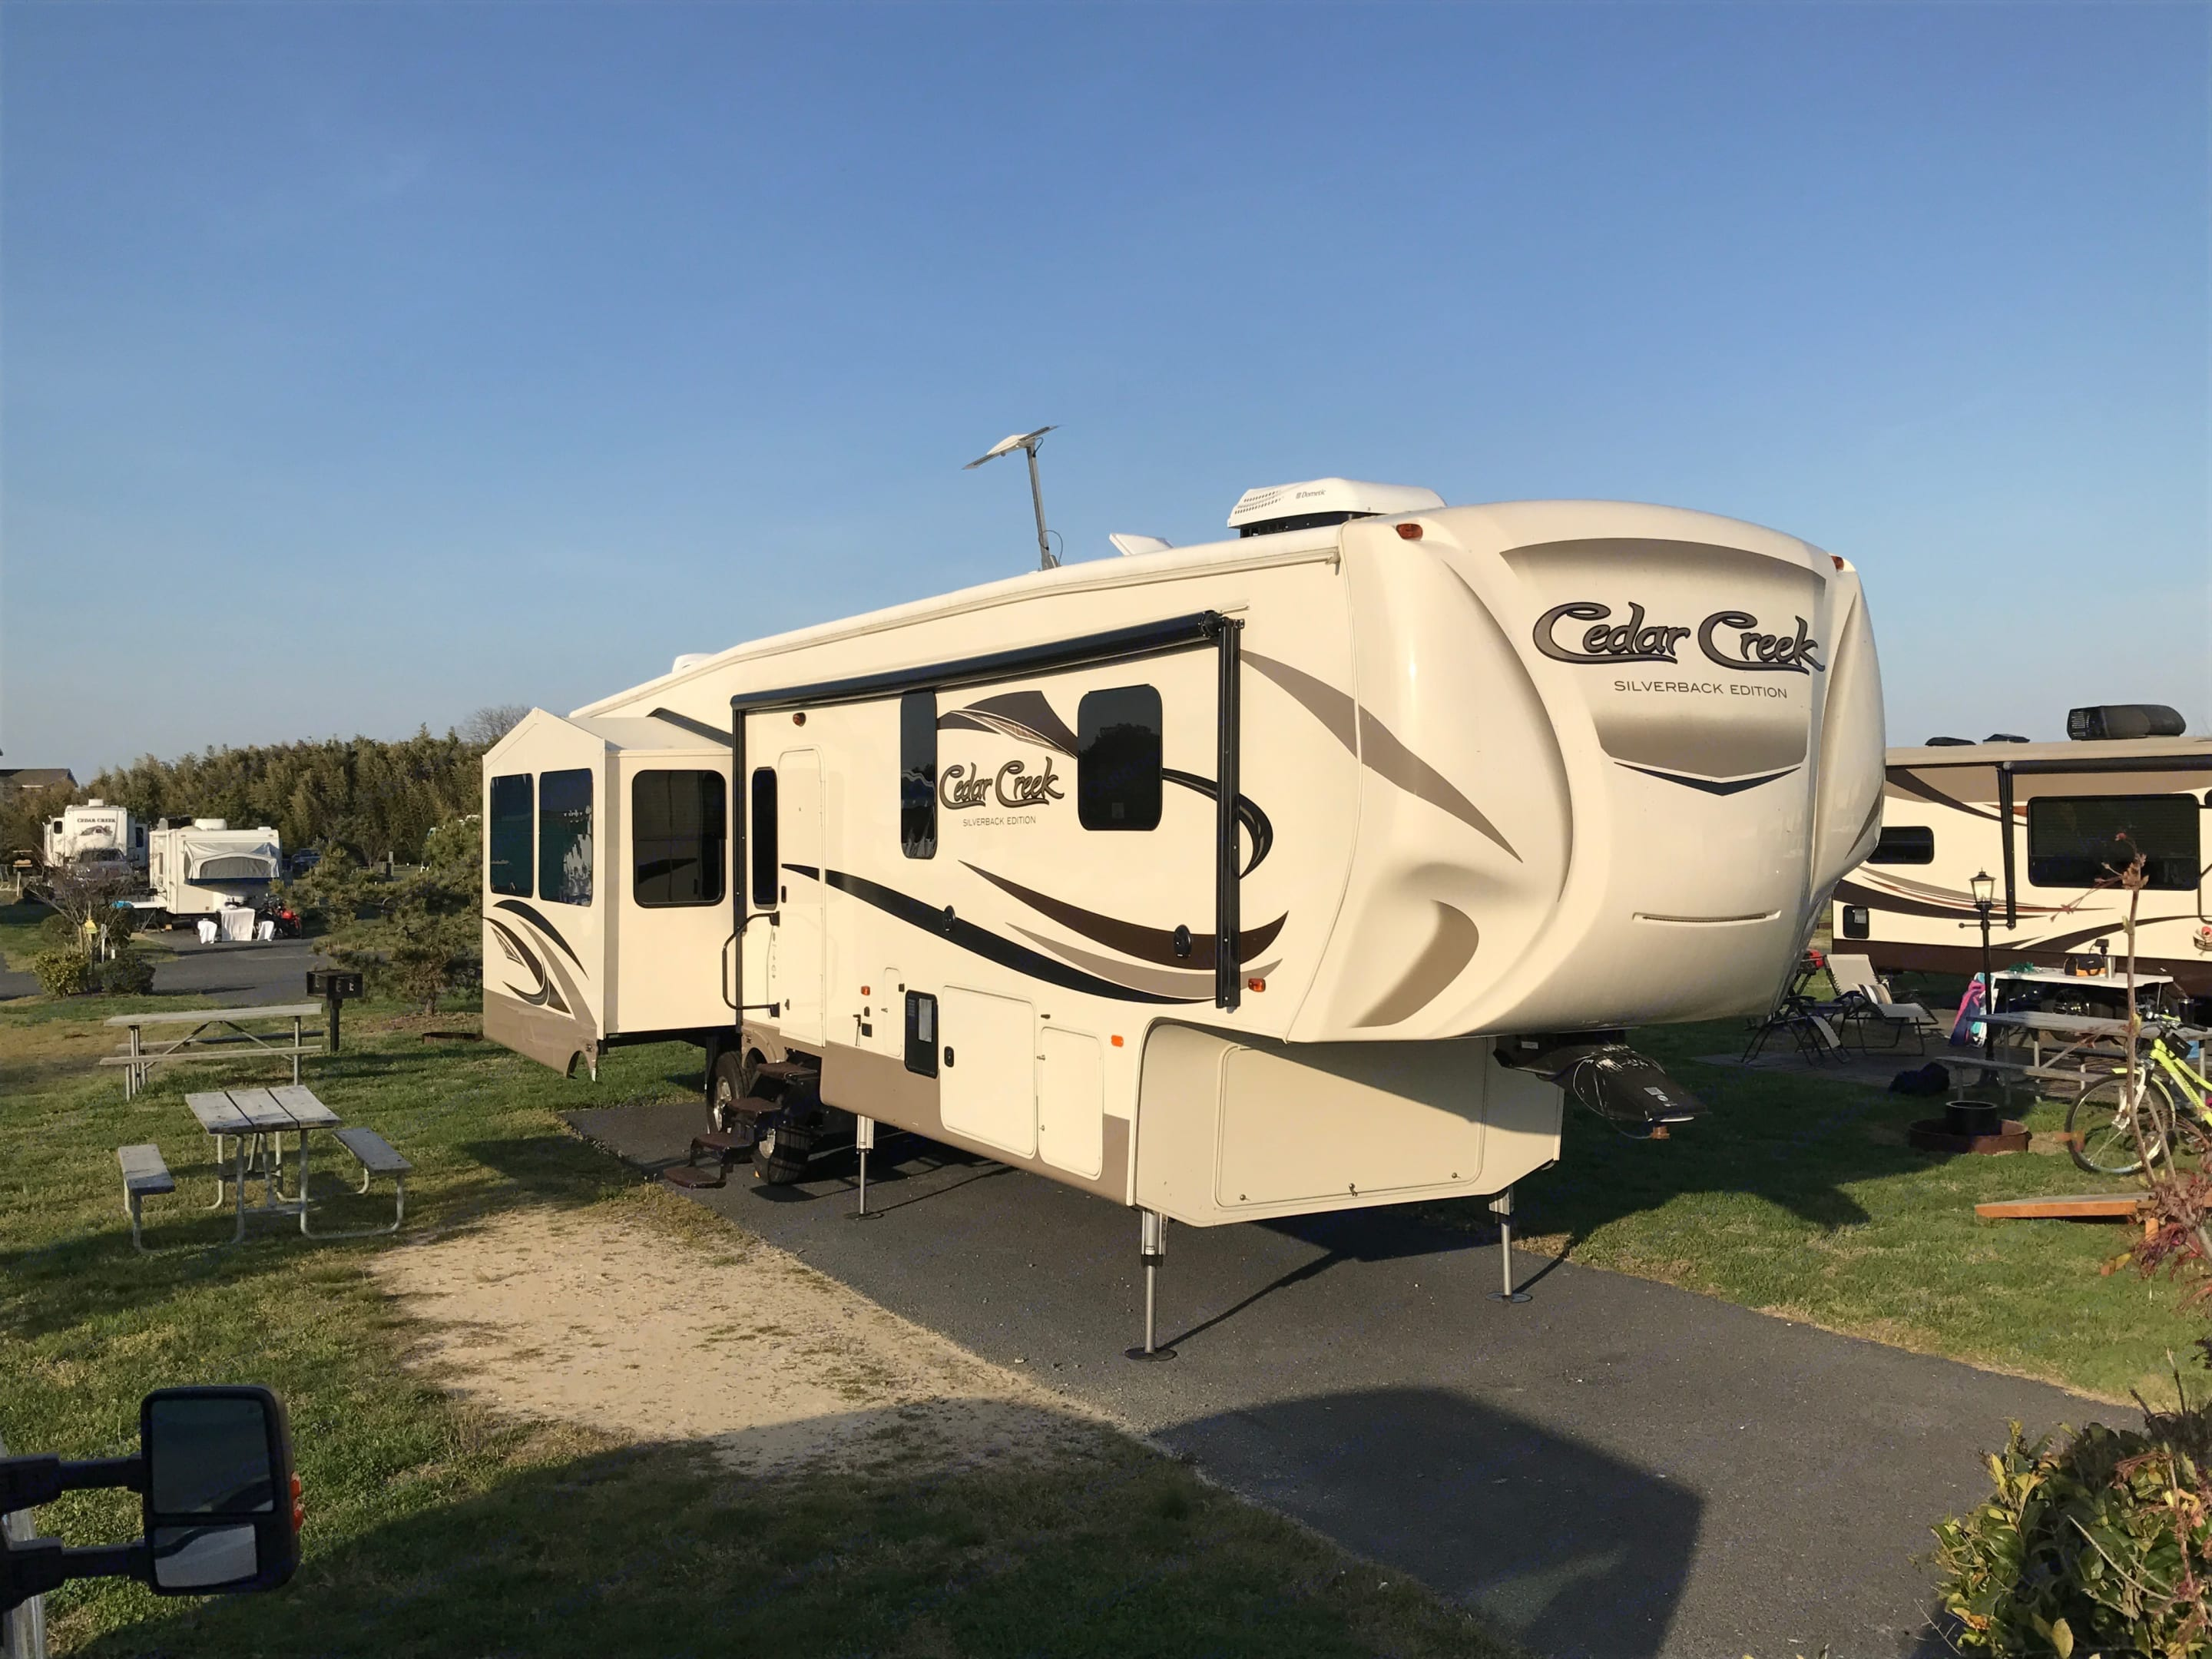 2016 Forest River Cedar Creek Silverback Edition in like-new condition. Fully equipped w/ auto-leveling system. Power generator available upon request. Forest River Cedar Creek Fifth Wheel 2016